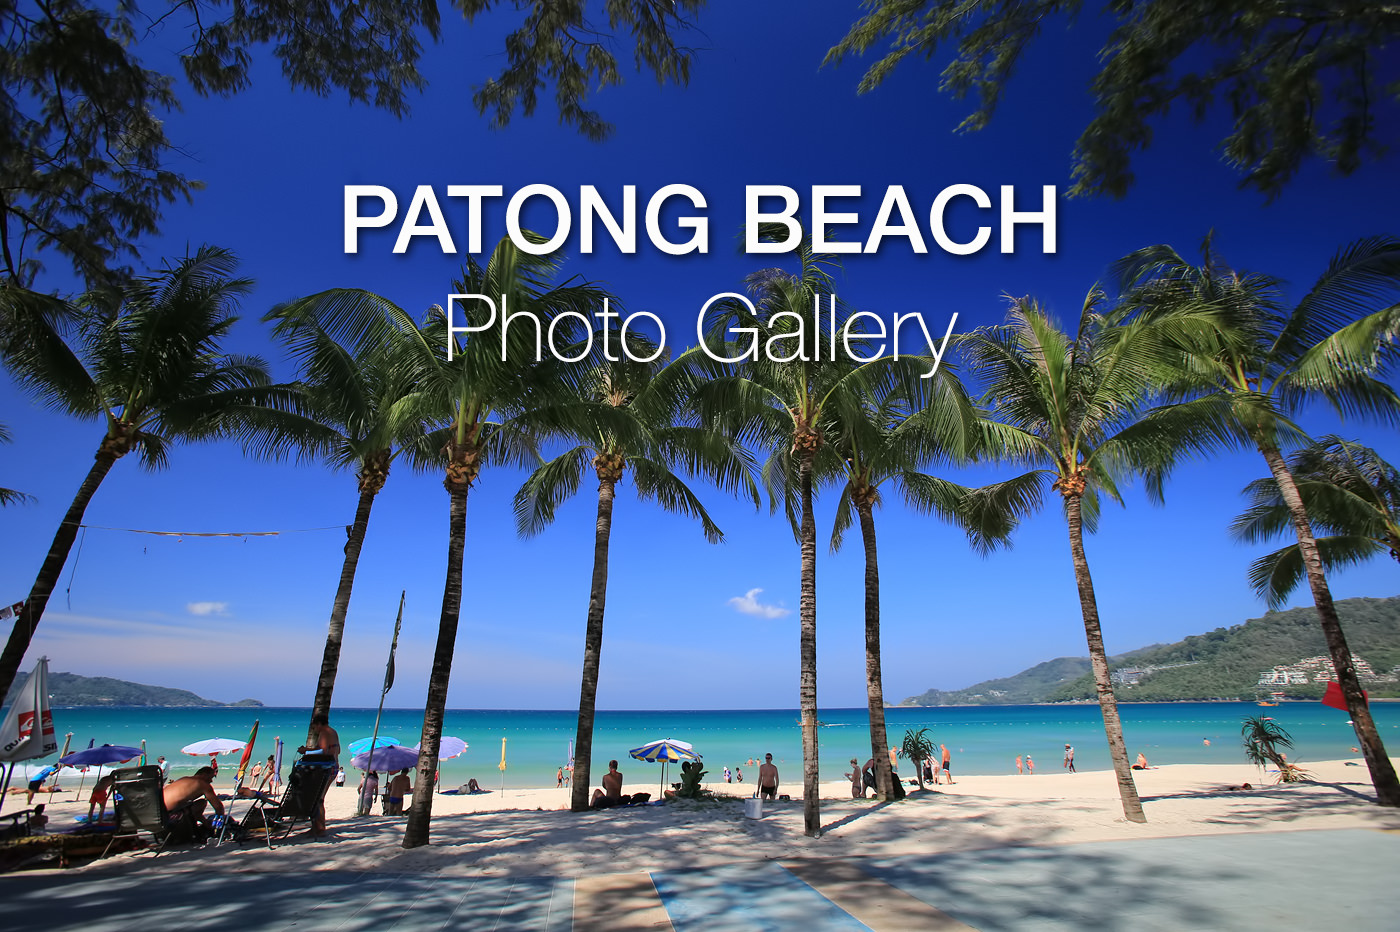 Patong Beach Photos